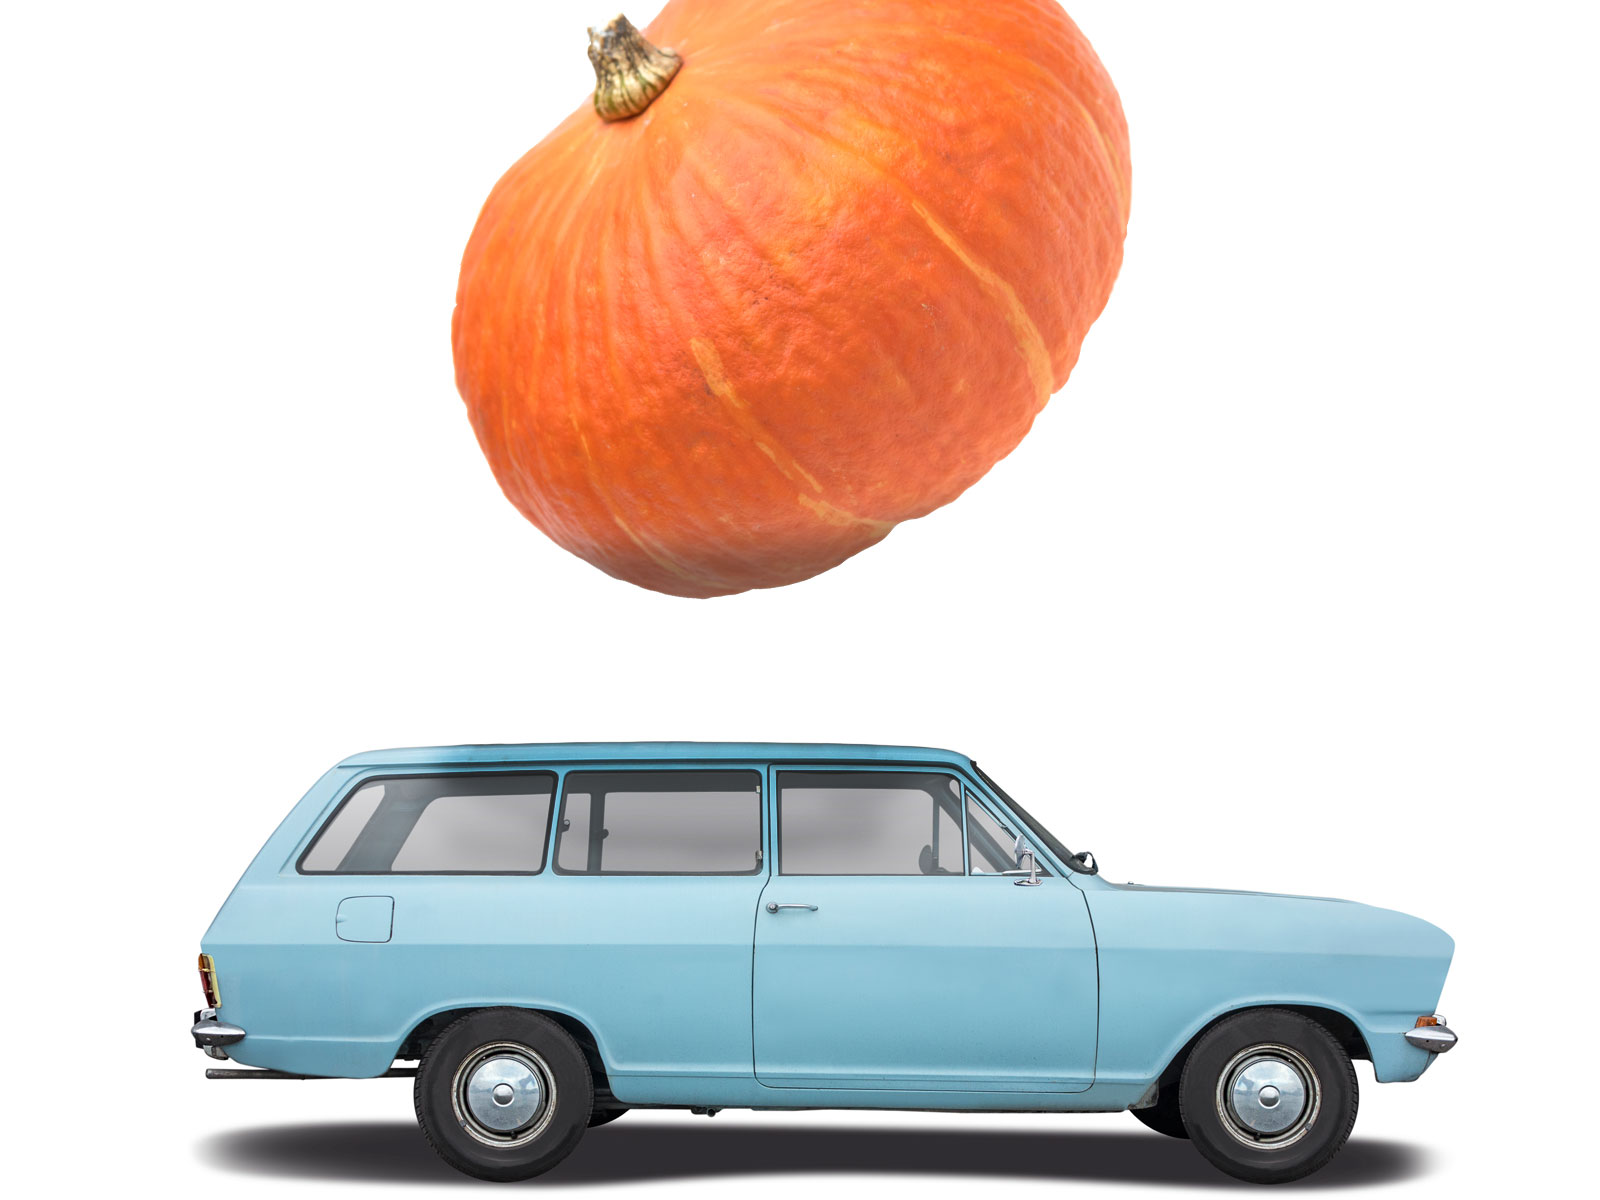 Smashing Cars with Giant Pumpkins Is Halloween's Most Underrated Tradition